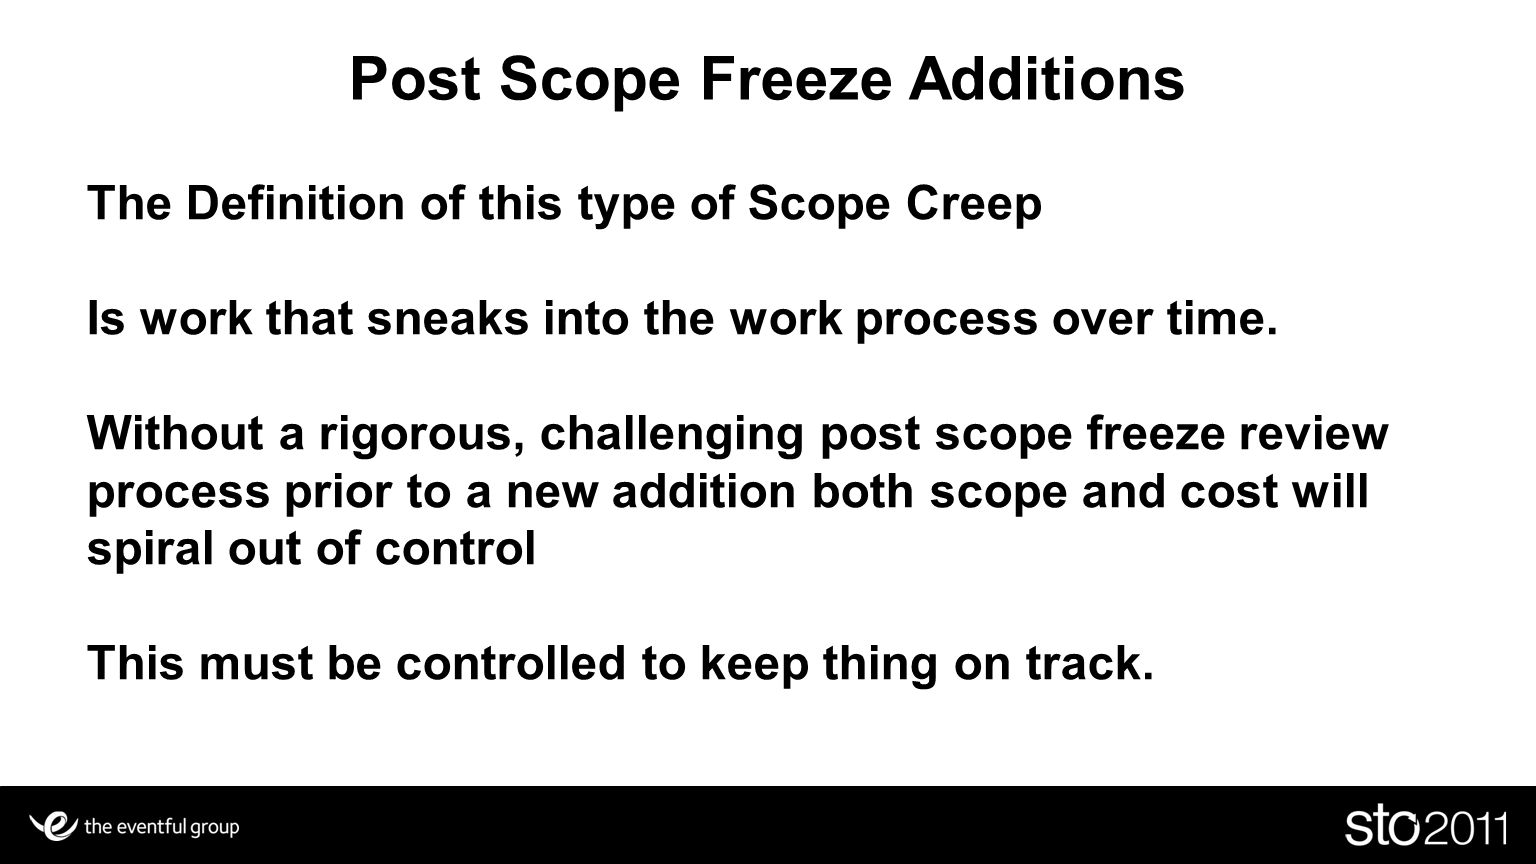 Post Scope Freeze Additions